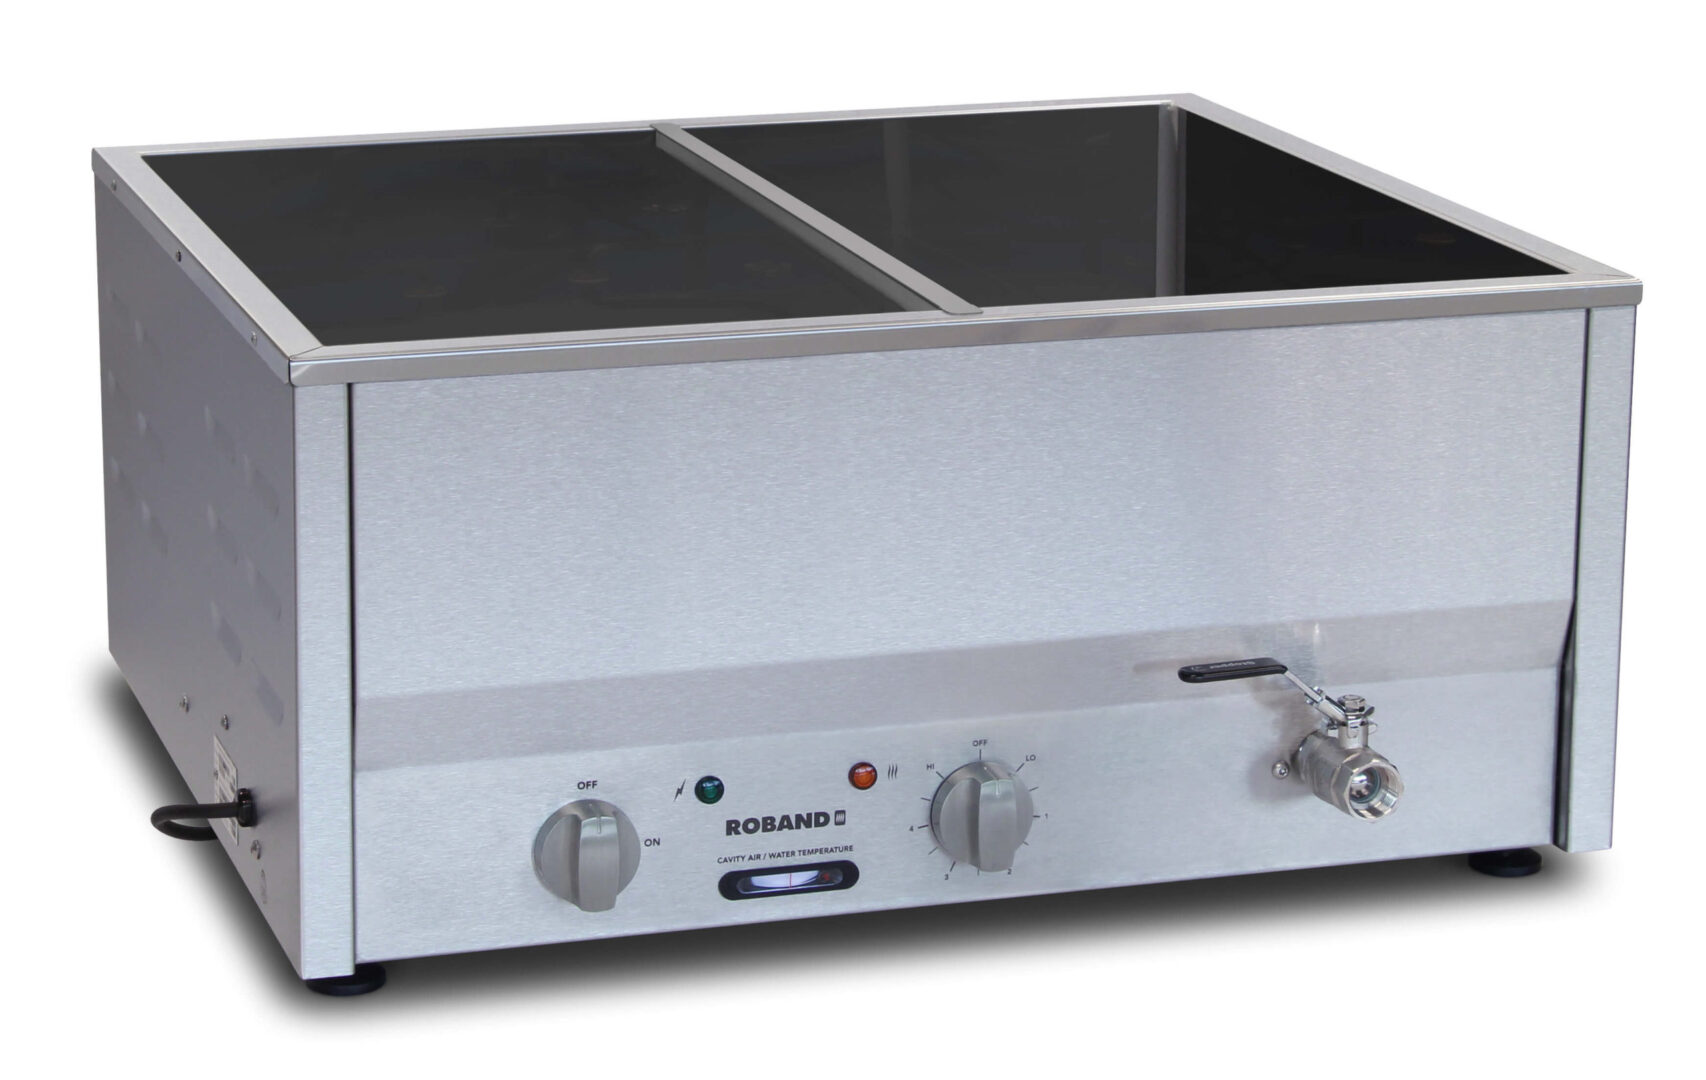 Roband Counter Top Bain Marie 4 x 1/2 size, pans not included